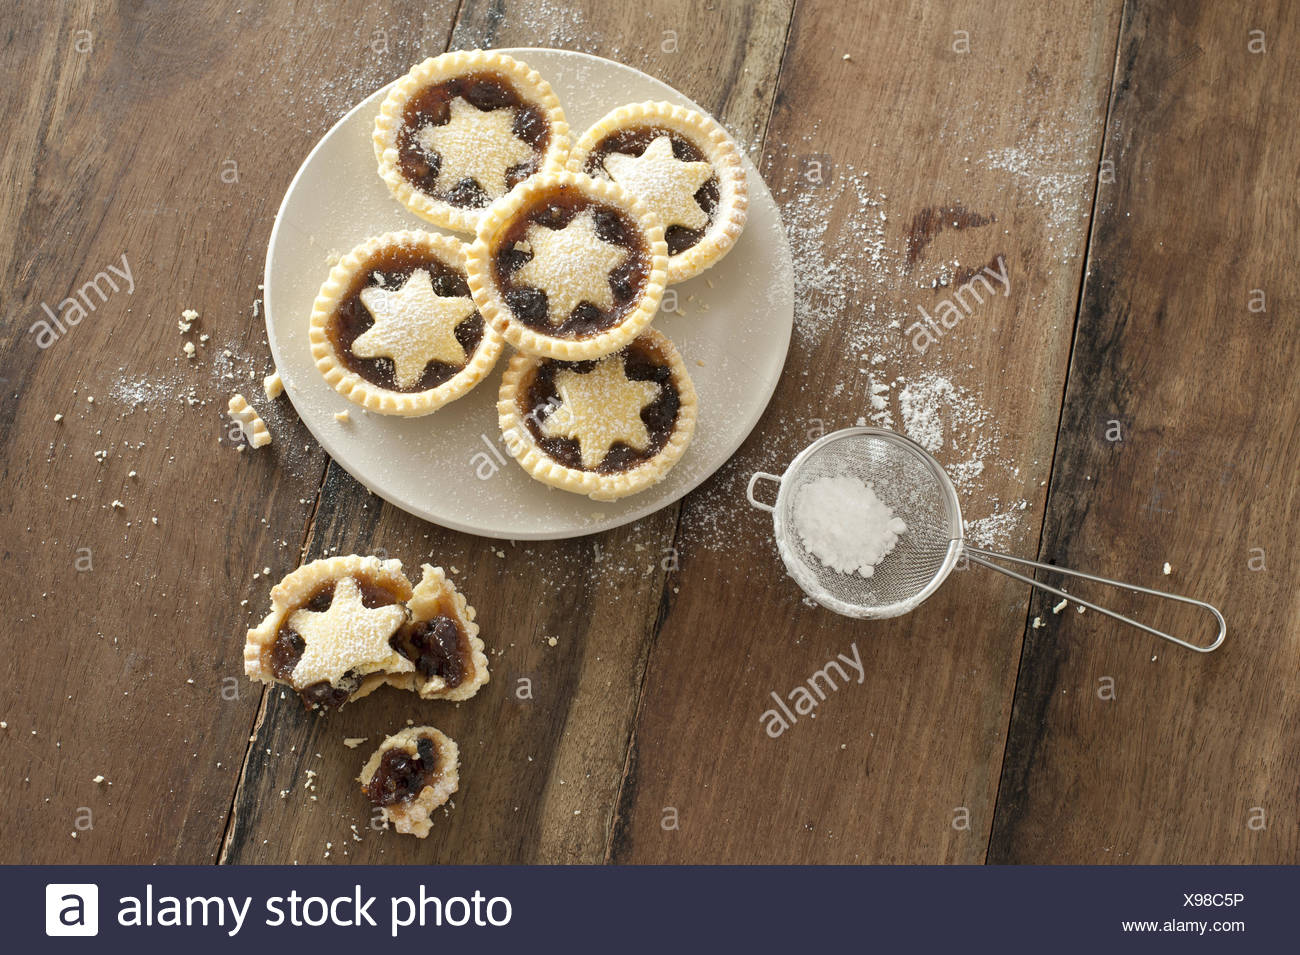 Decorative freshly baked Christmas mince pies - Stock Image